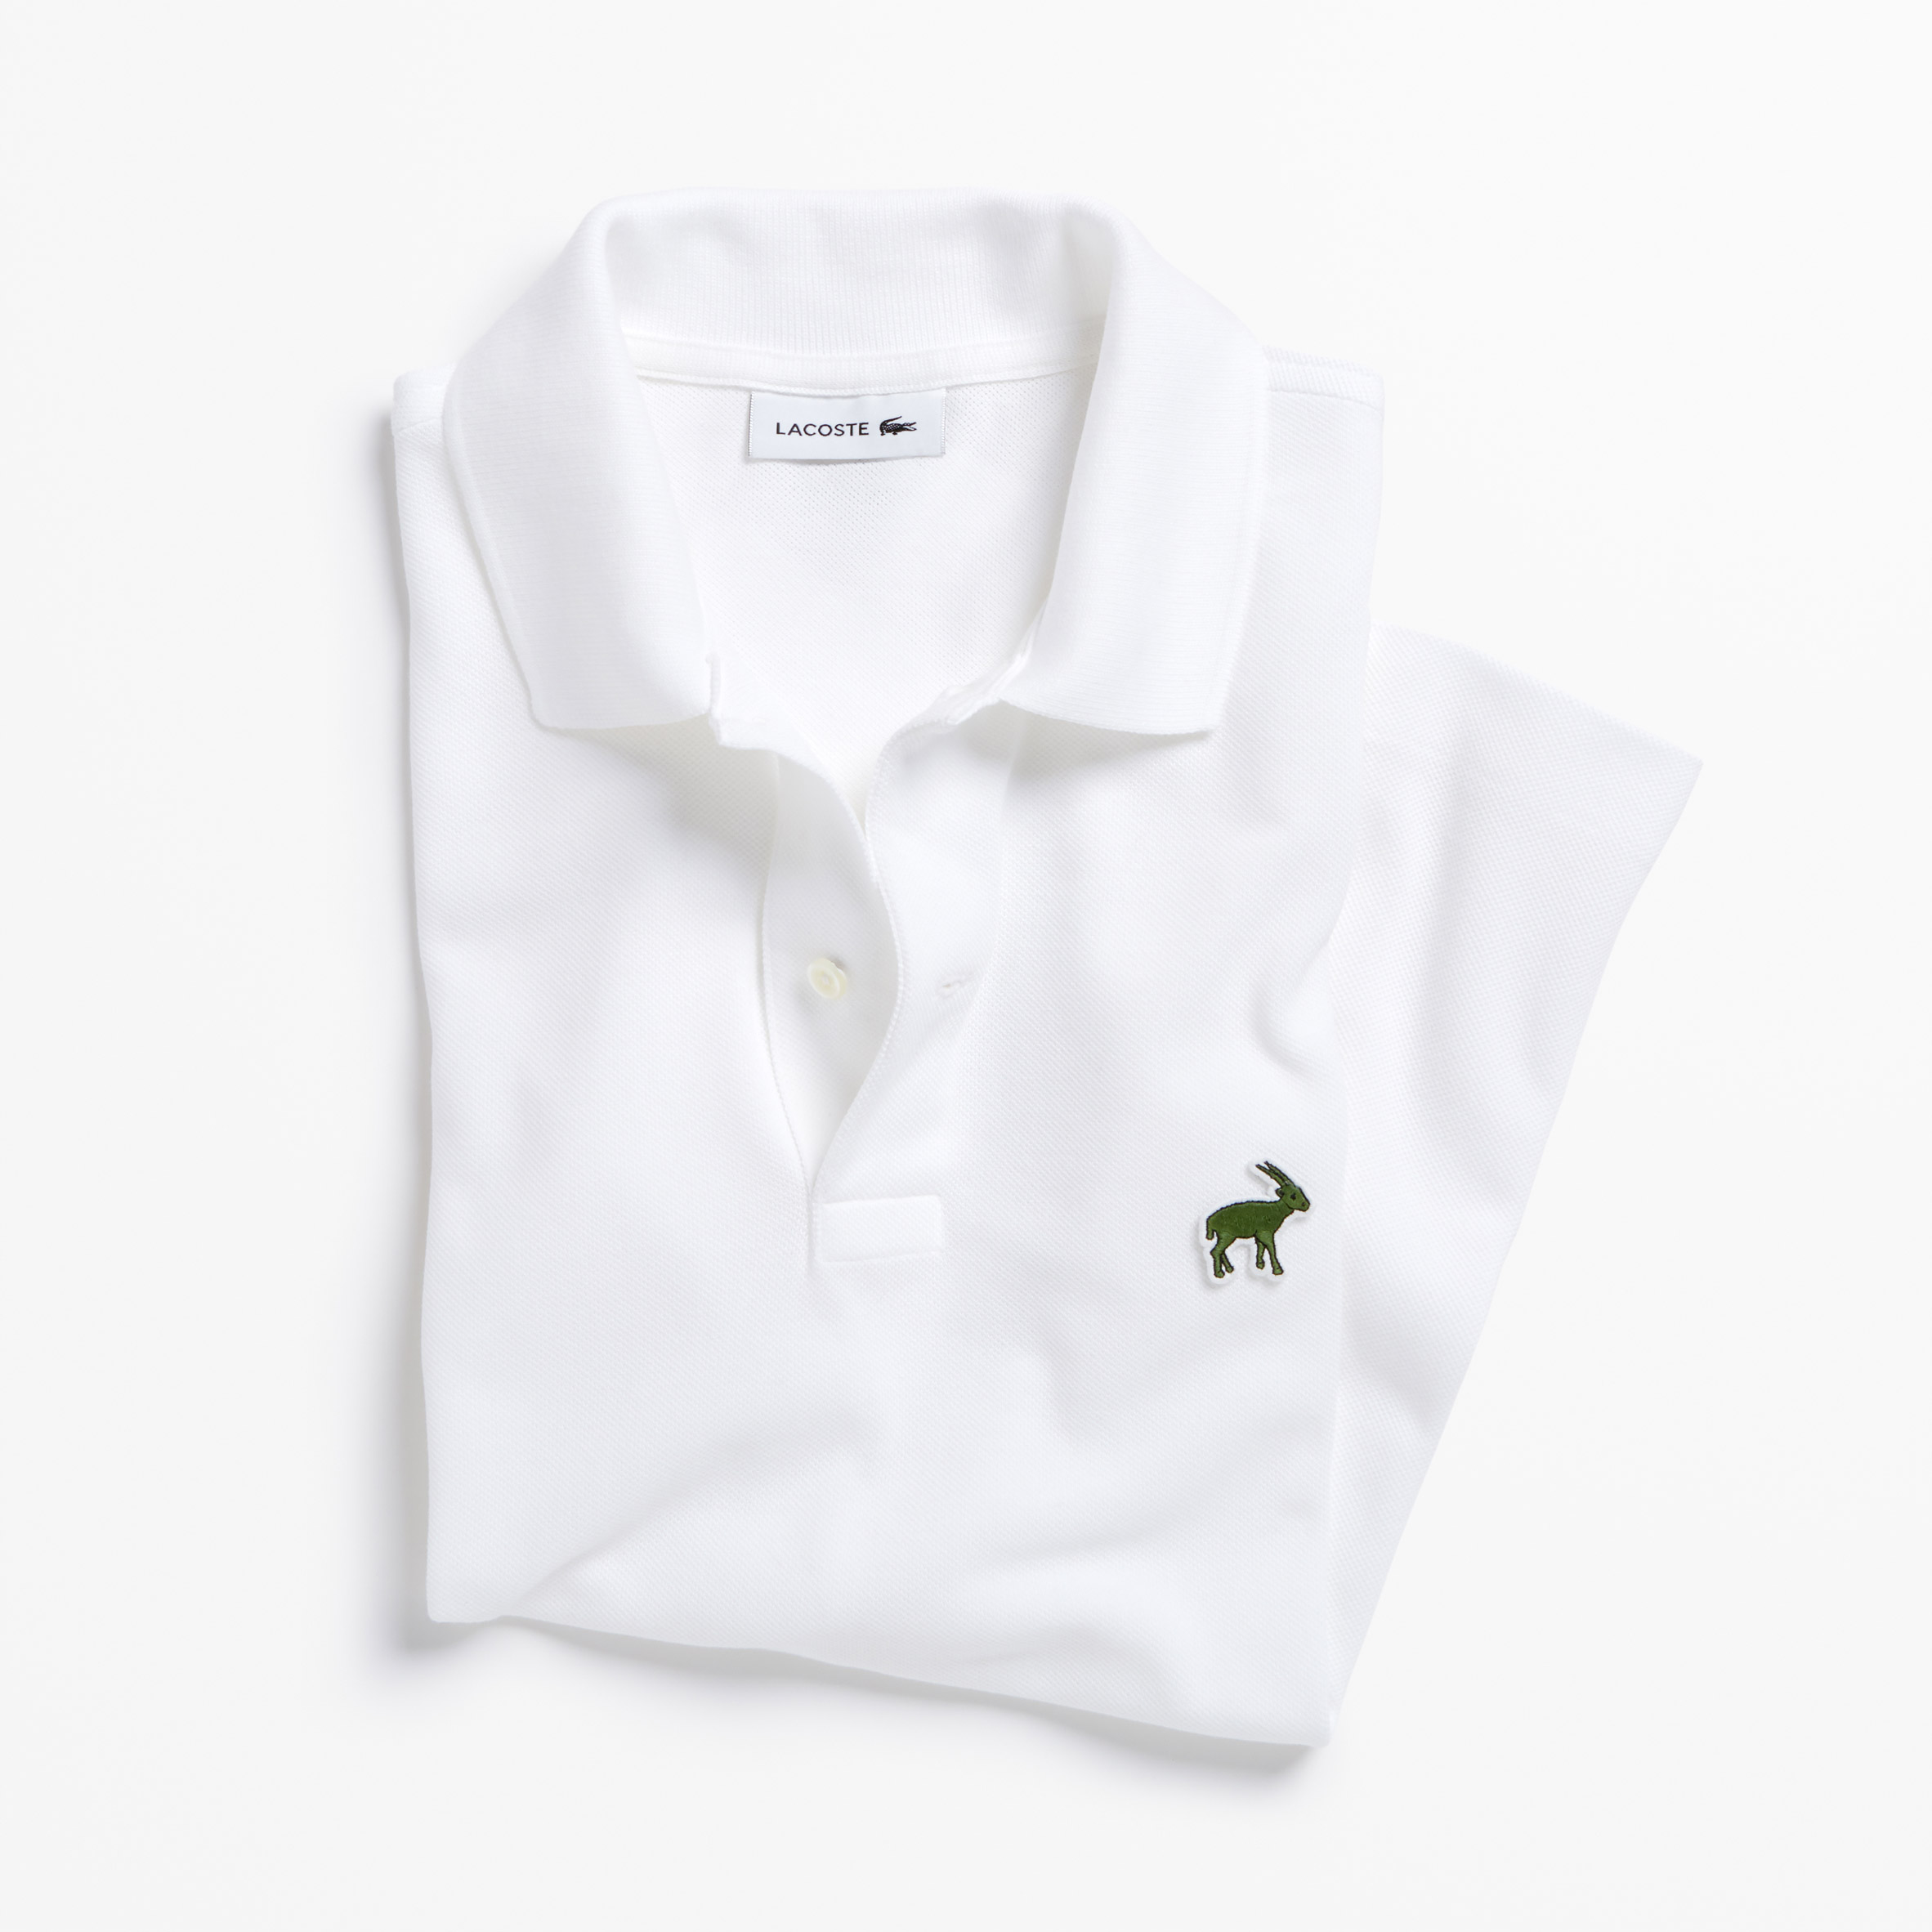 e84f96179 ... Lacoste's crocodile logo is replaced by endangered species for limited  edition polo shirts